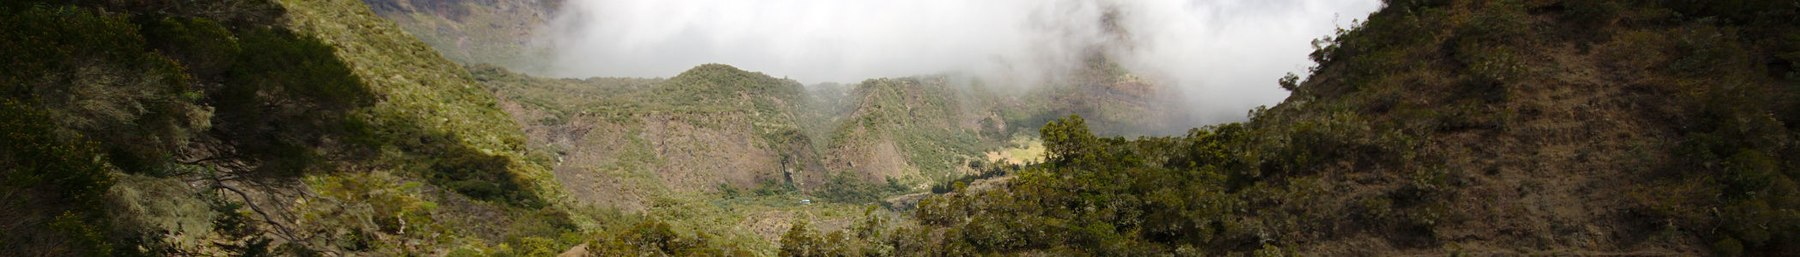 Réunion banner Mountain scenery3.jpg